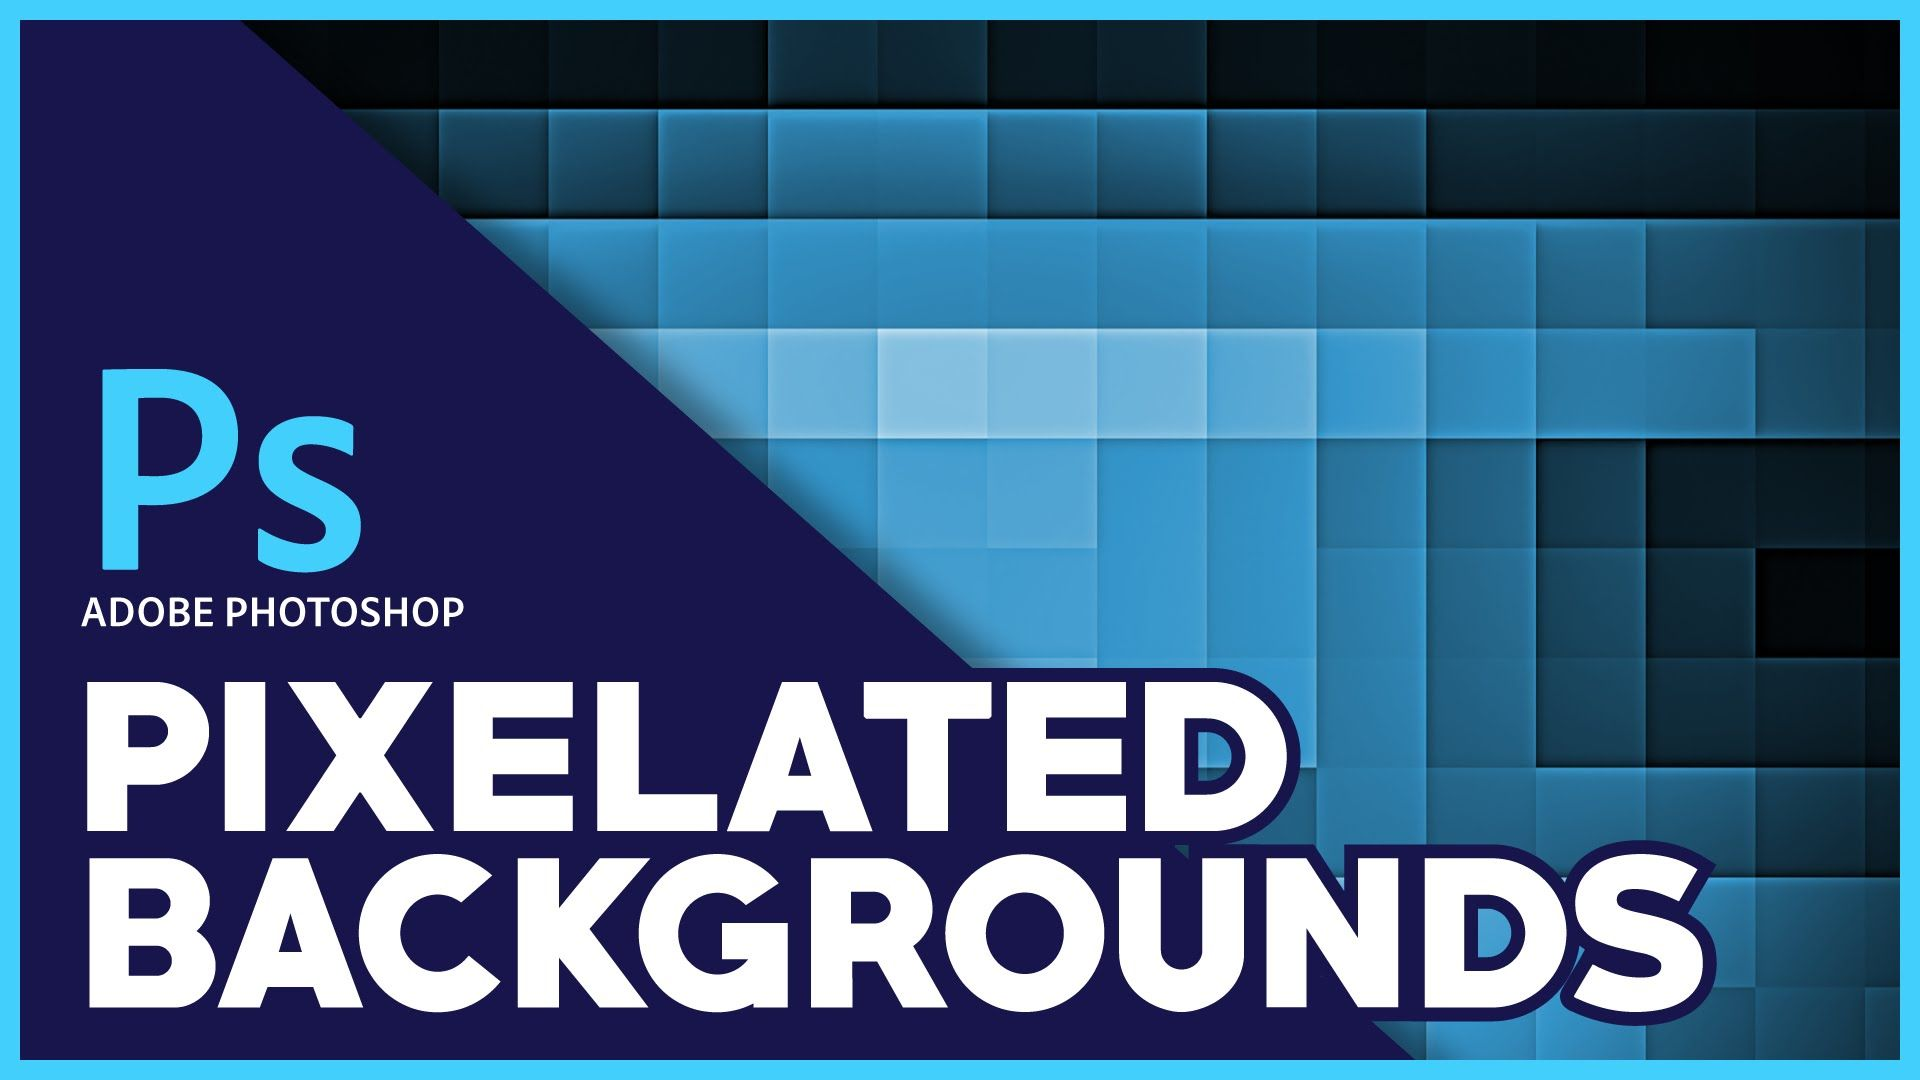 Adobe Photoshop | Pixelated Background Tutorial | Pixelation